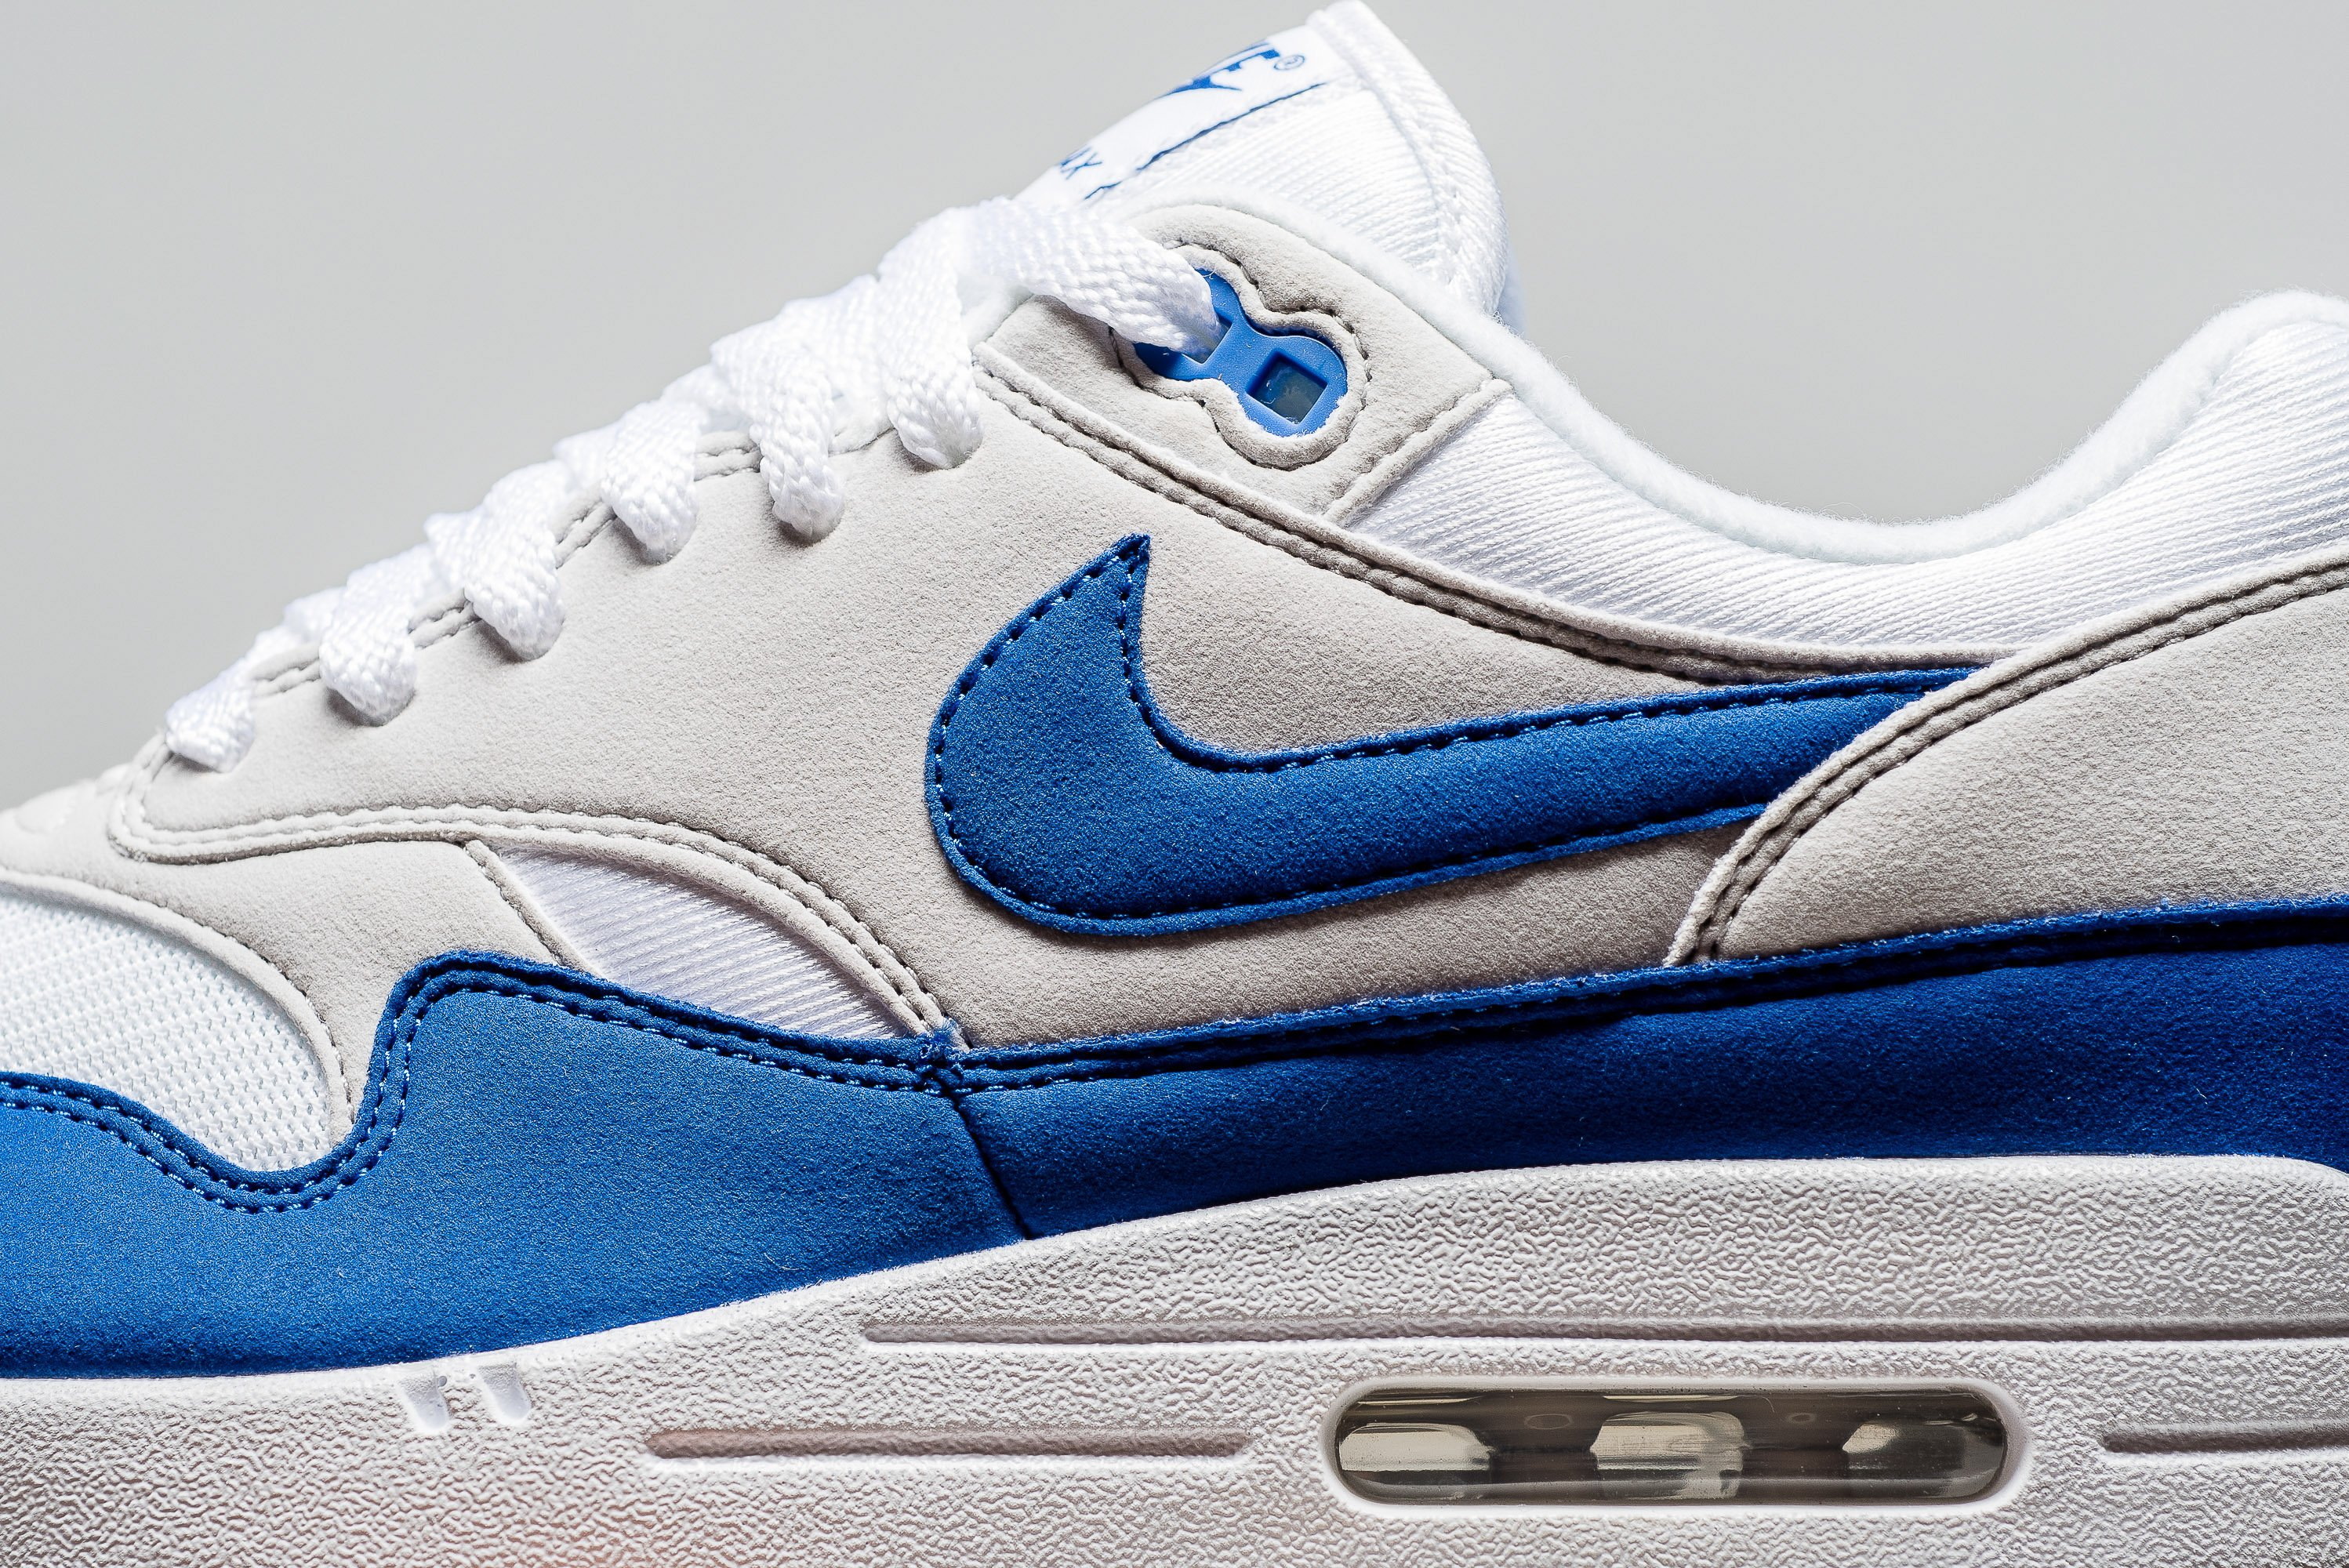 uk availability 5ed94 6bb42 Nike Air Max 1 OG Anniversary White Royal Blue DS sz 8-13 908375-101 Limited